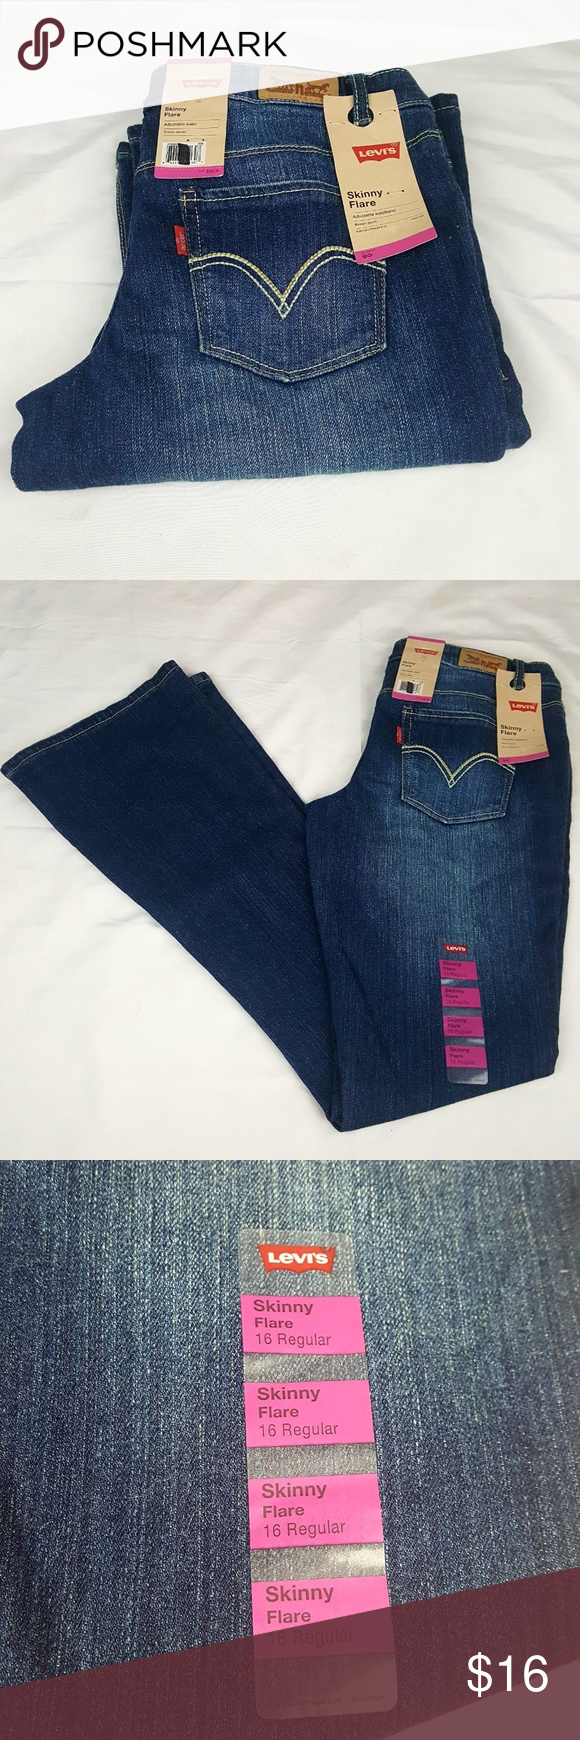 0ad21733362 Levi Skinny Flare Girls Size 16 Regular Jeans Brand new Levi's Jeans with  tags still attached